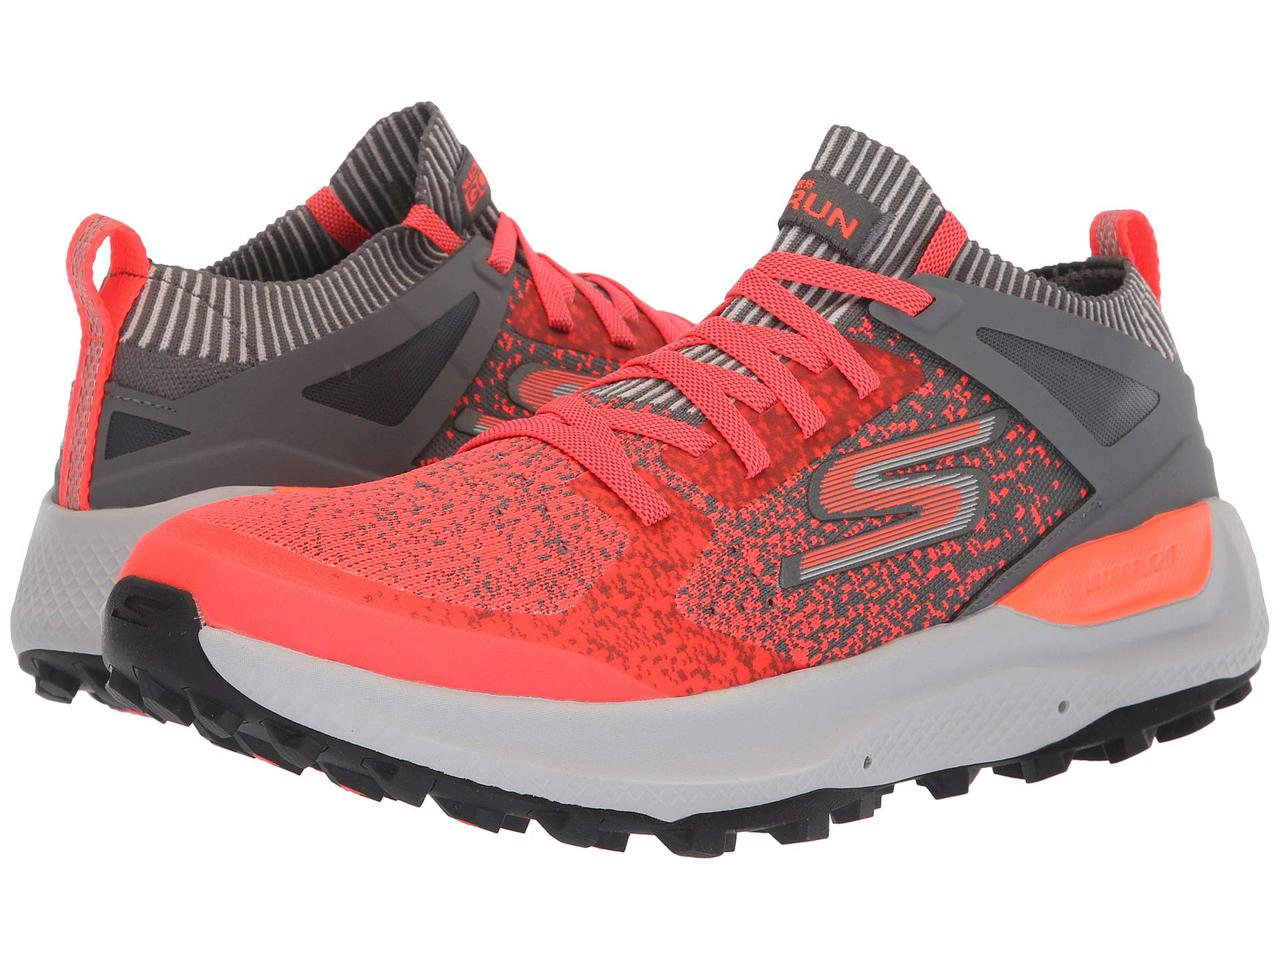 3a8ead8a7eac Кроссовки Кеды (Оригинал) SKECHERS Performance Go Run Max Trail 5 Ultra  Charcoal